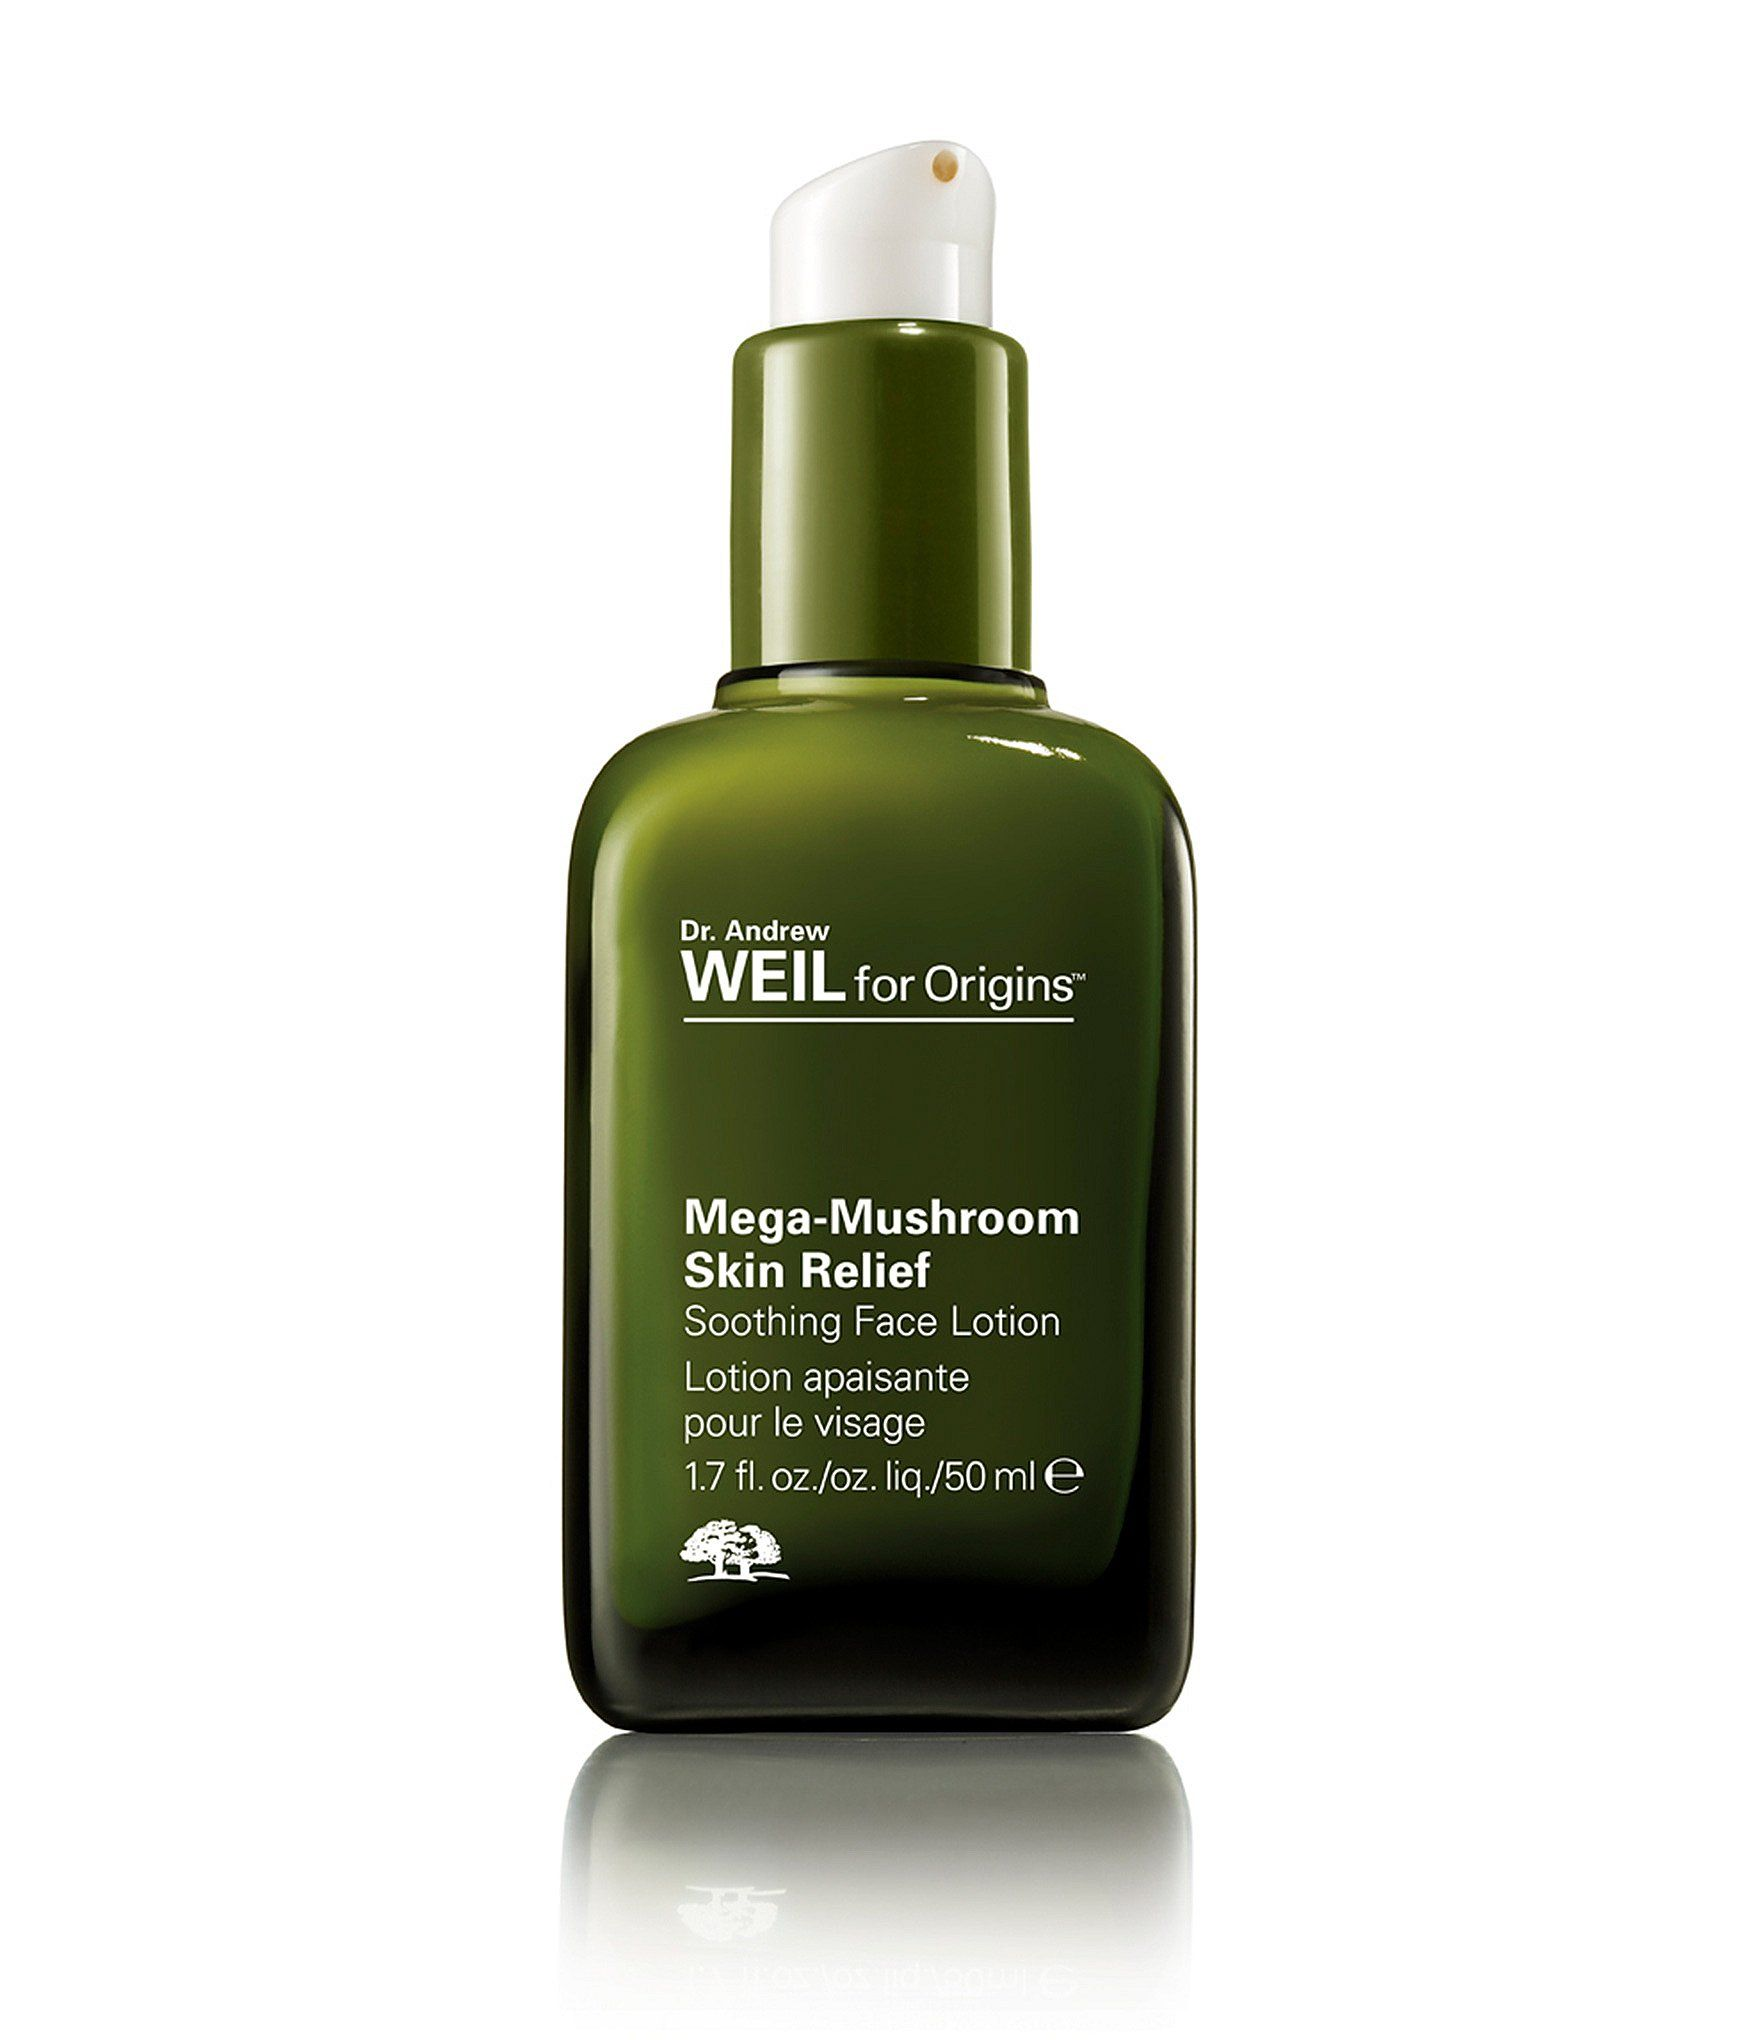 Origins Dr. Andrew Weil for Origins Mega-Mushroom Skin Relief Soothing Face Lotion - N/A N/A